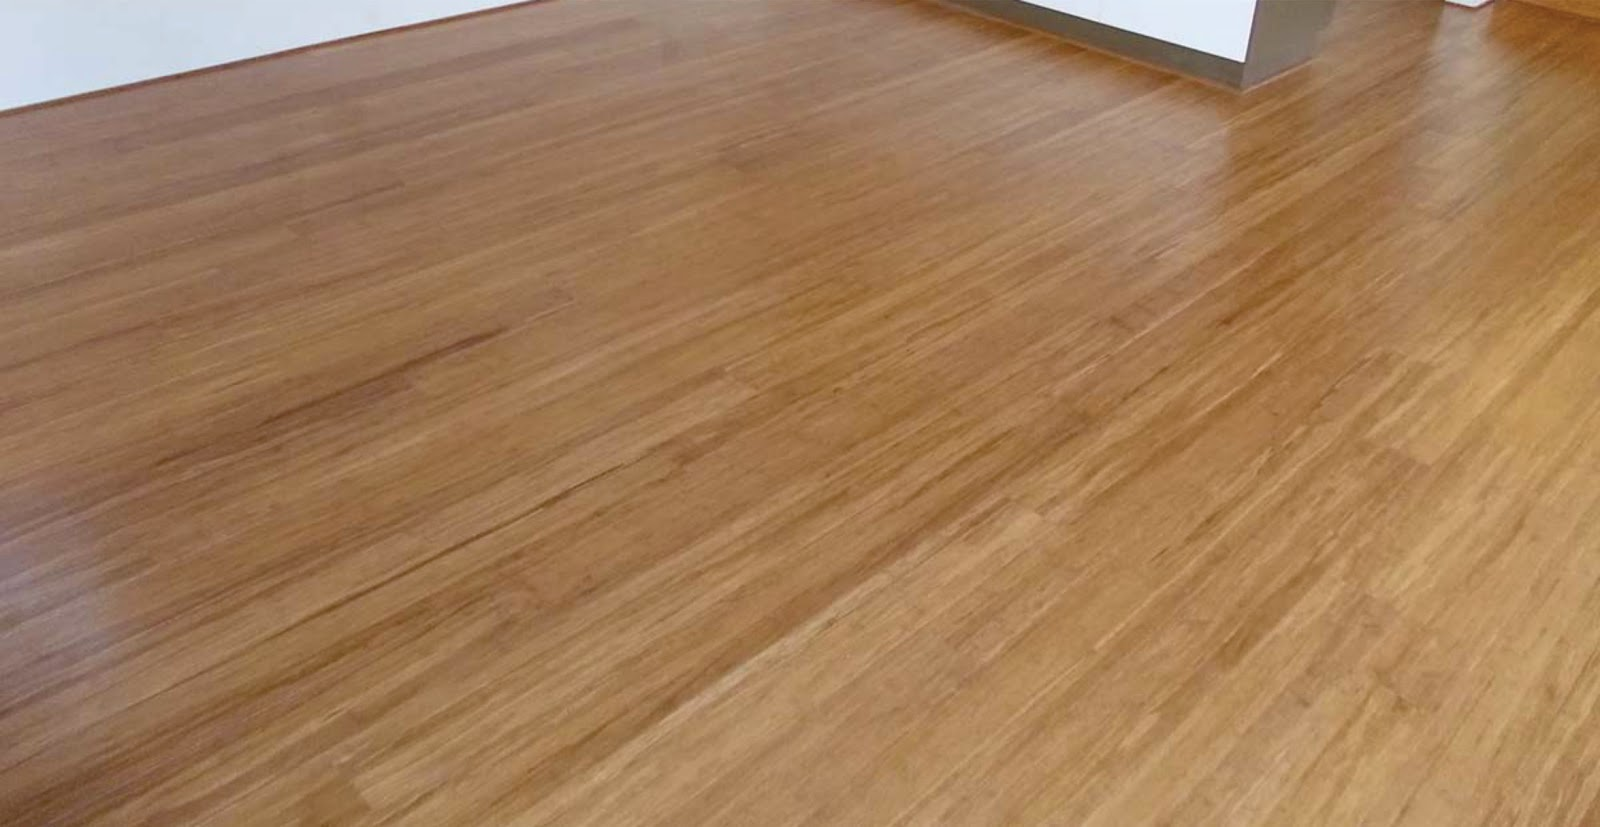 Bamboo Grove Photo Hardwood Flooring